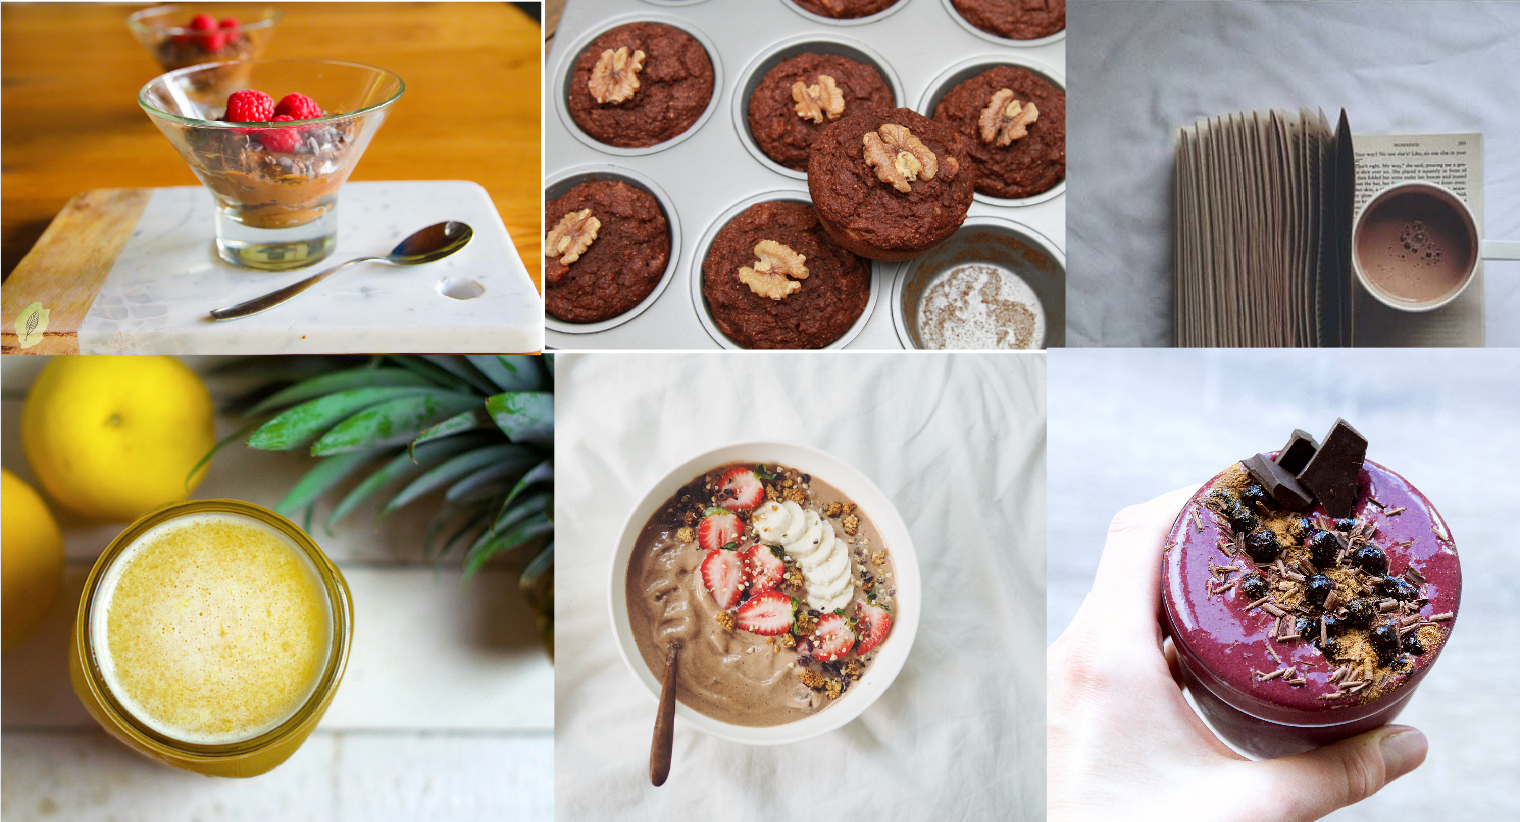 Free winter recipe ebook omniblend australia pdf version of our winter recipe ebook packed with amazing recipes from australia leading health professionals there will also be a download link forumfinder Choice Image